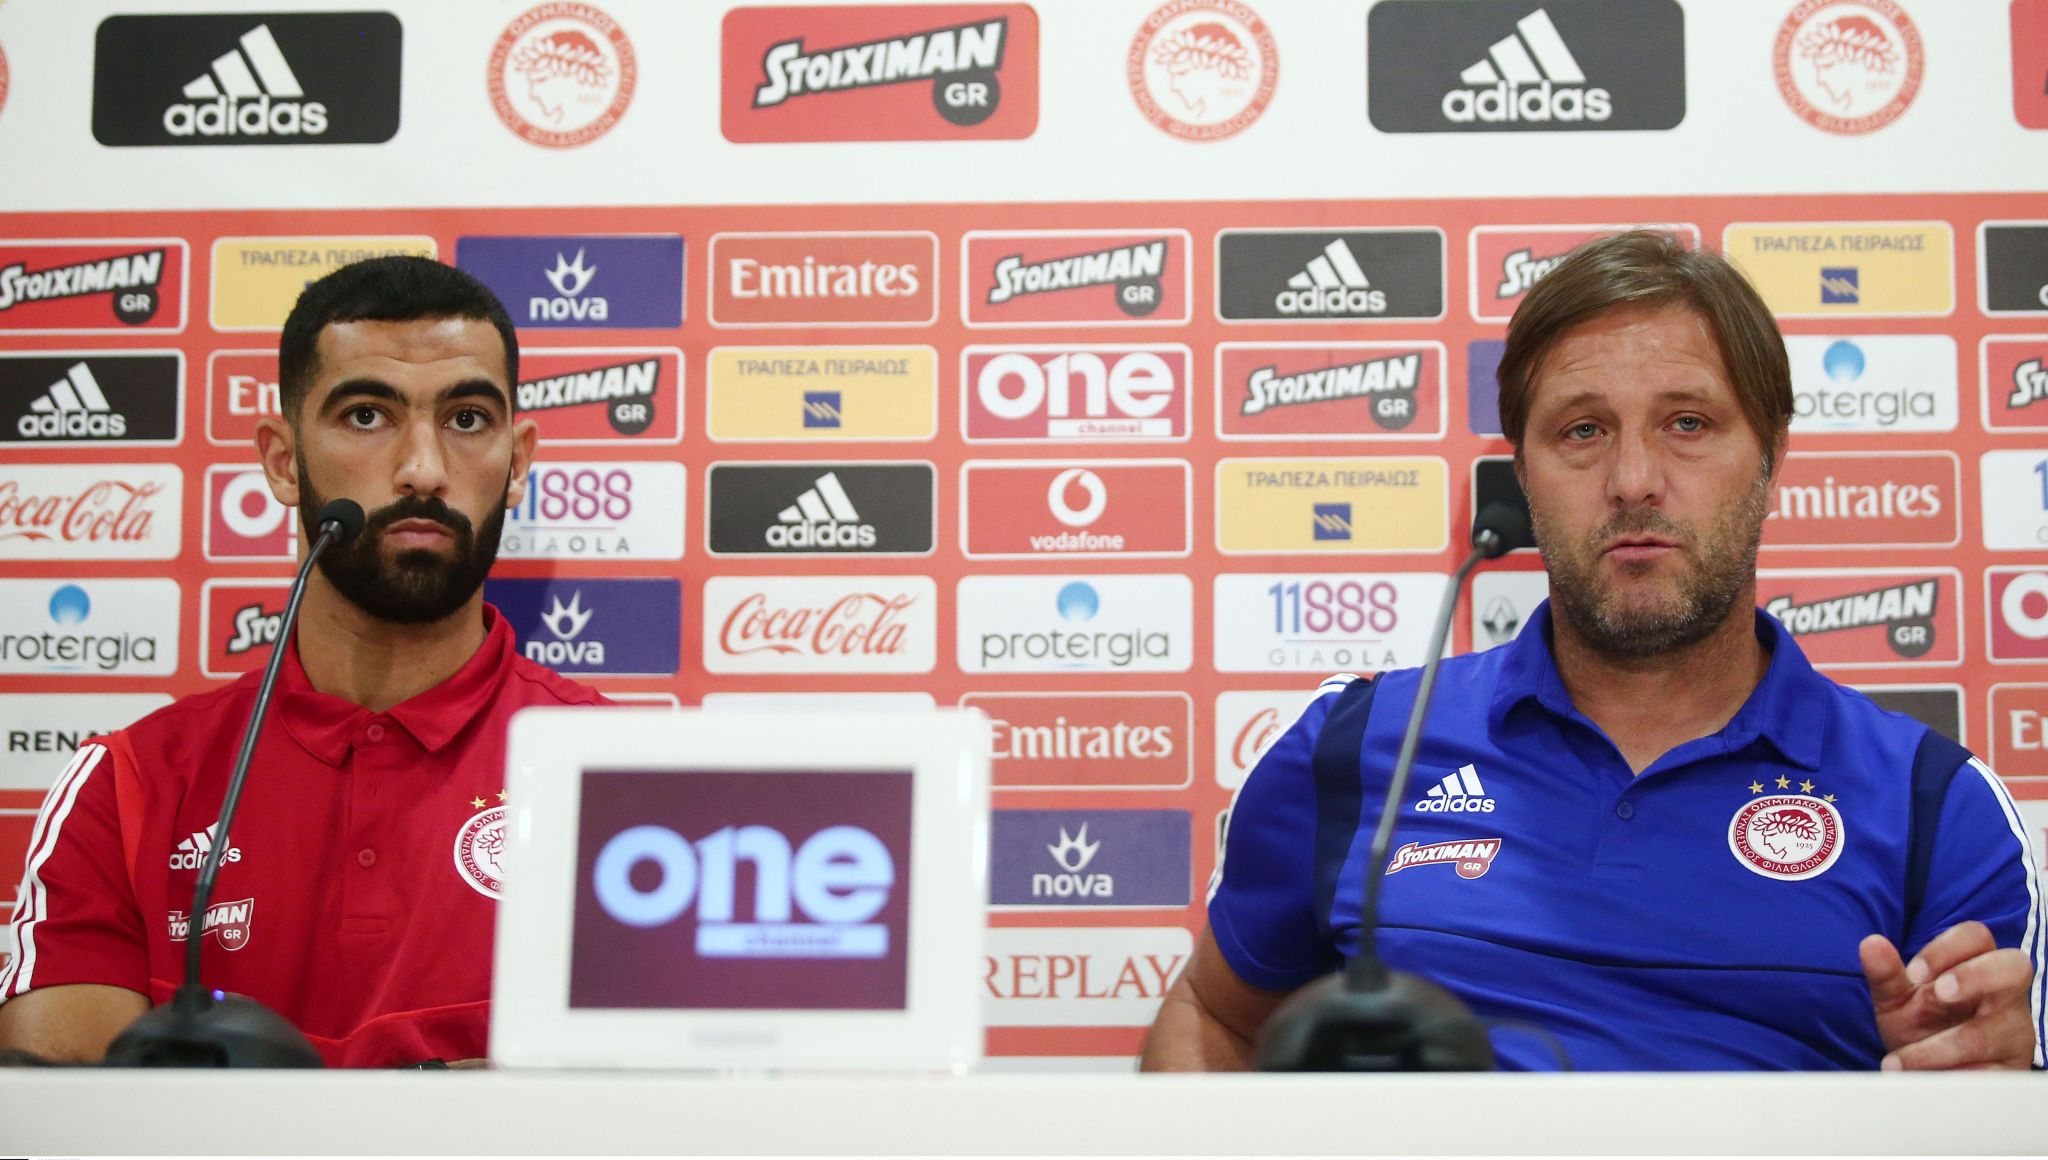 Martins and Meriah Press Conference ​